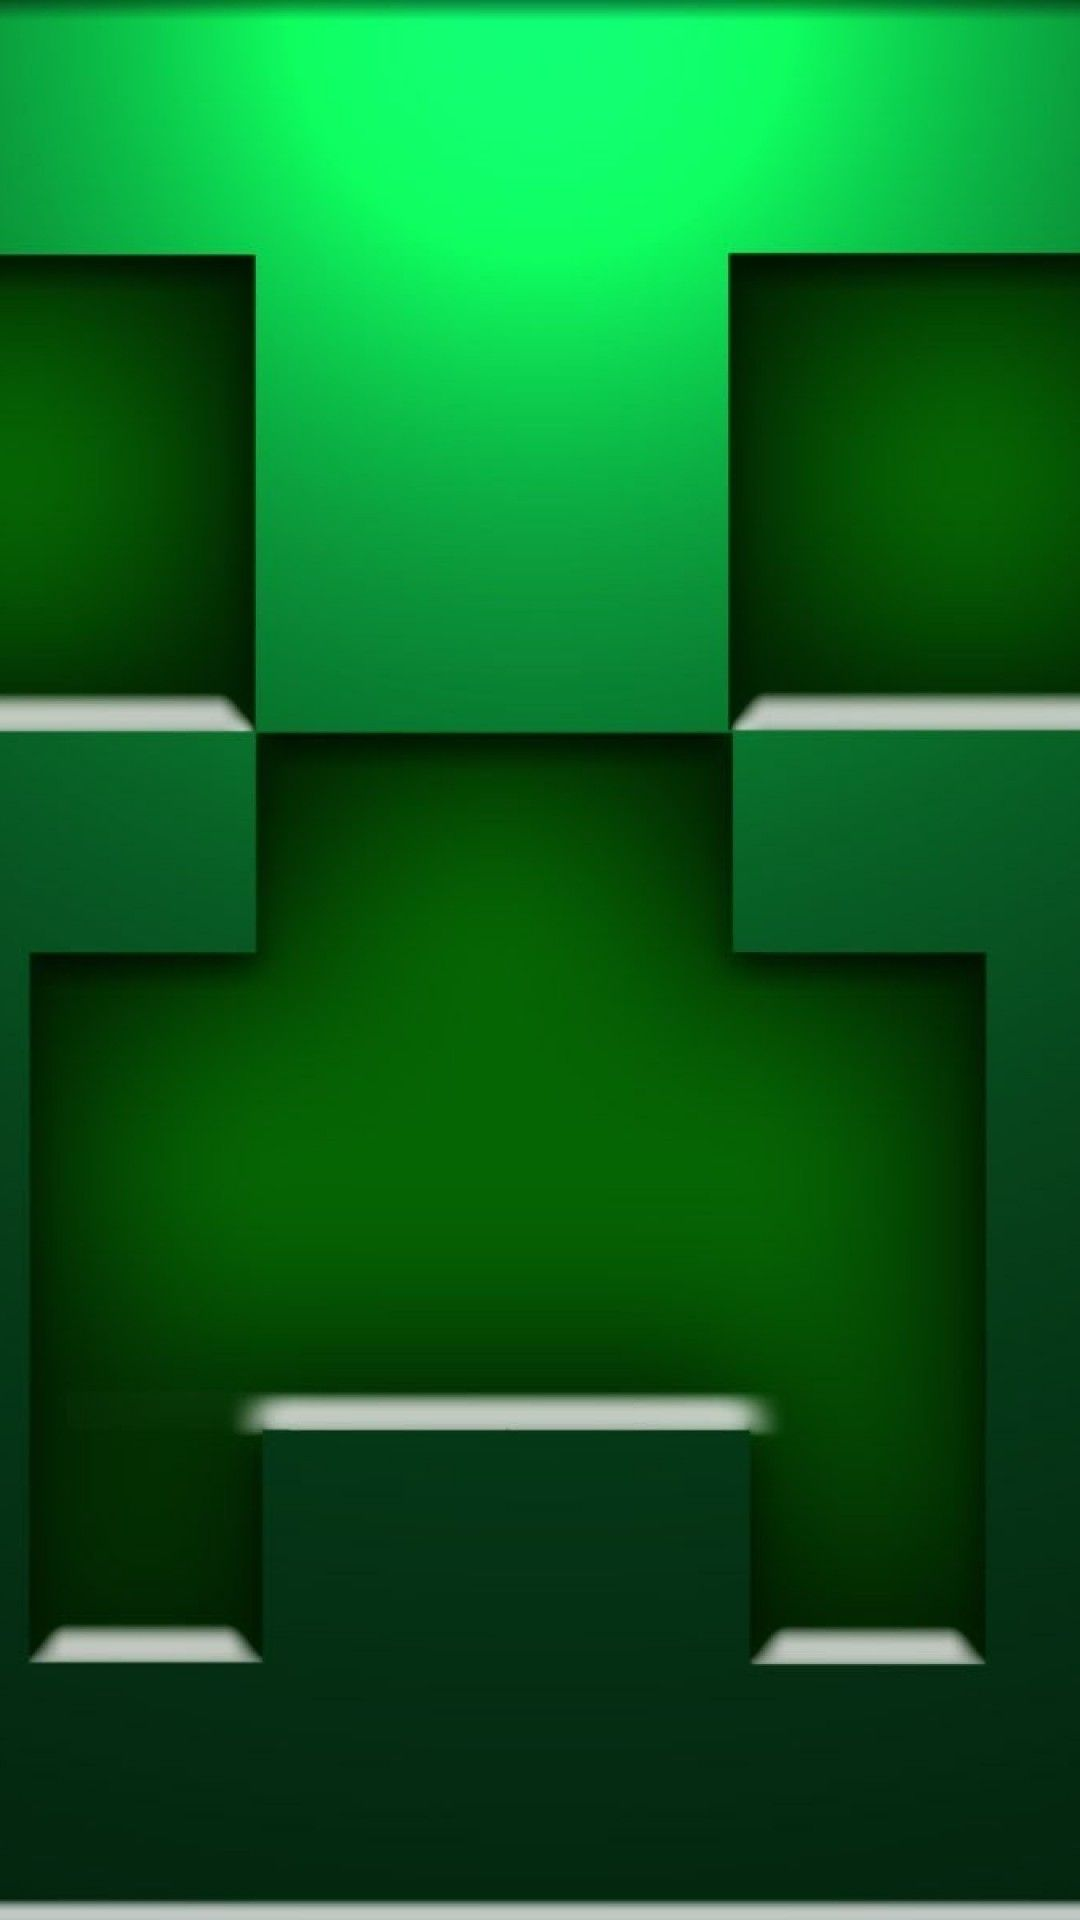 1080x1920 Free download minecraft creeper wallpaper mobile phone ...